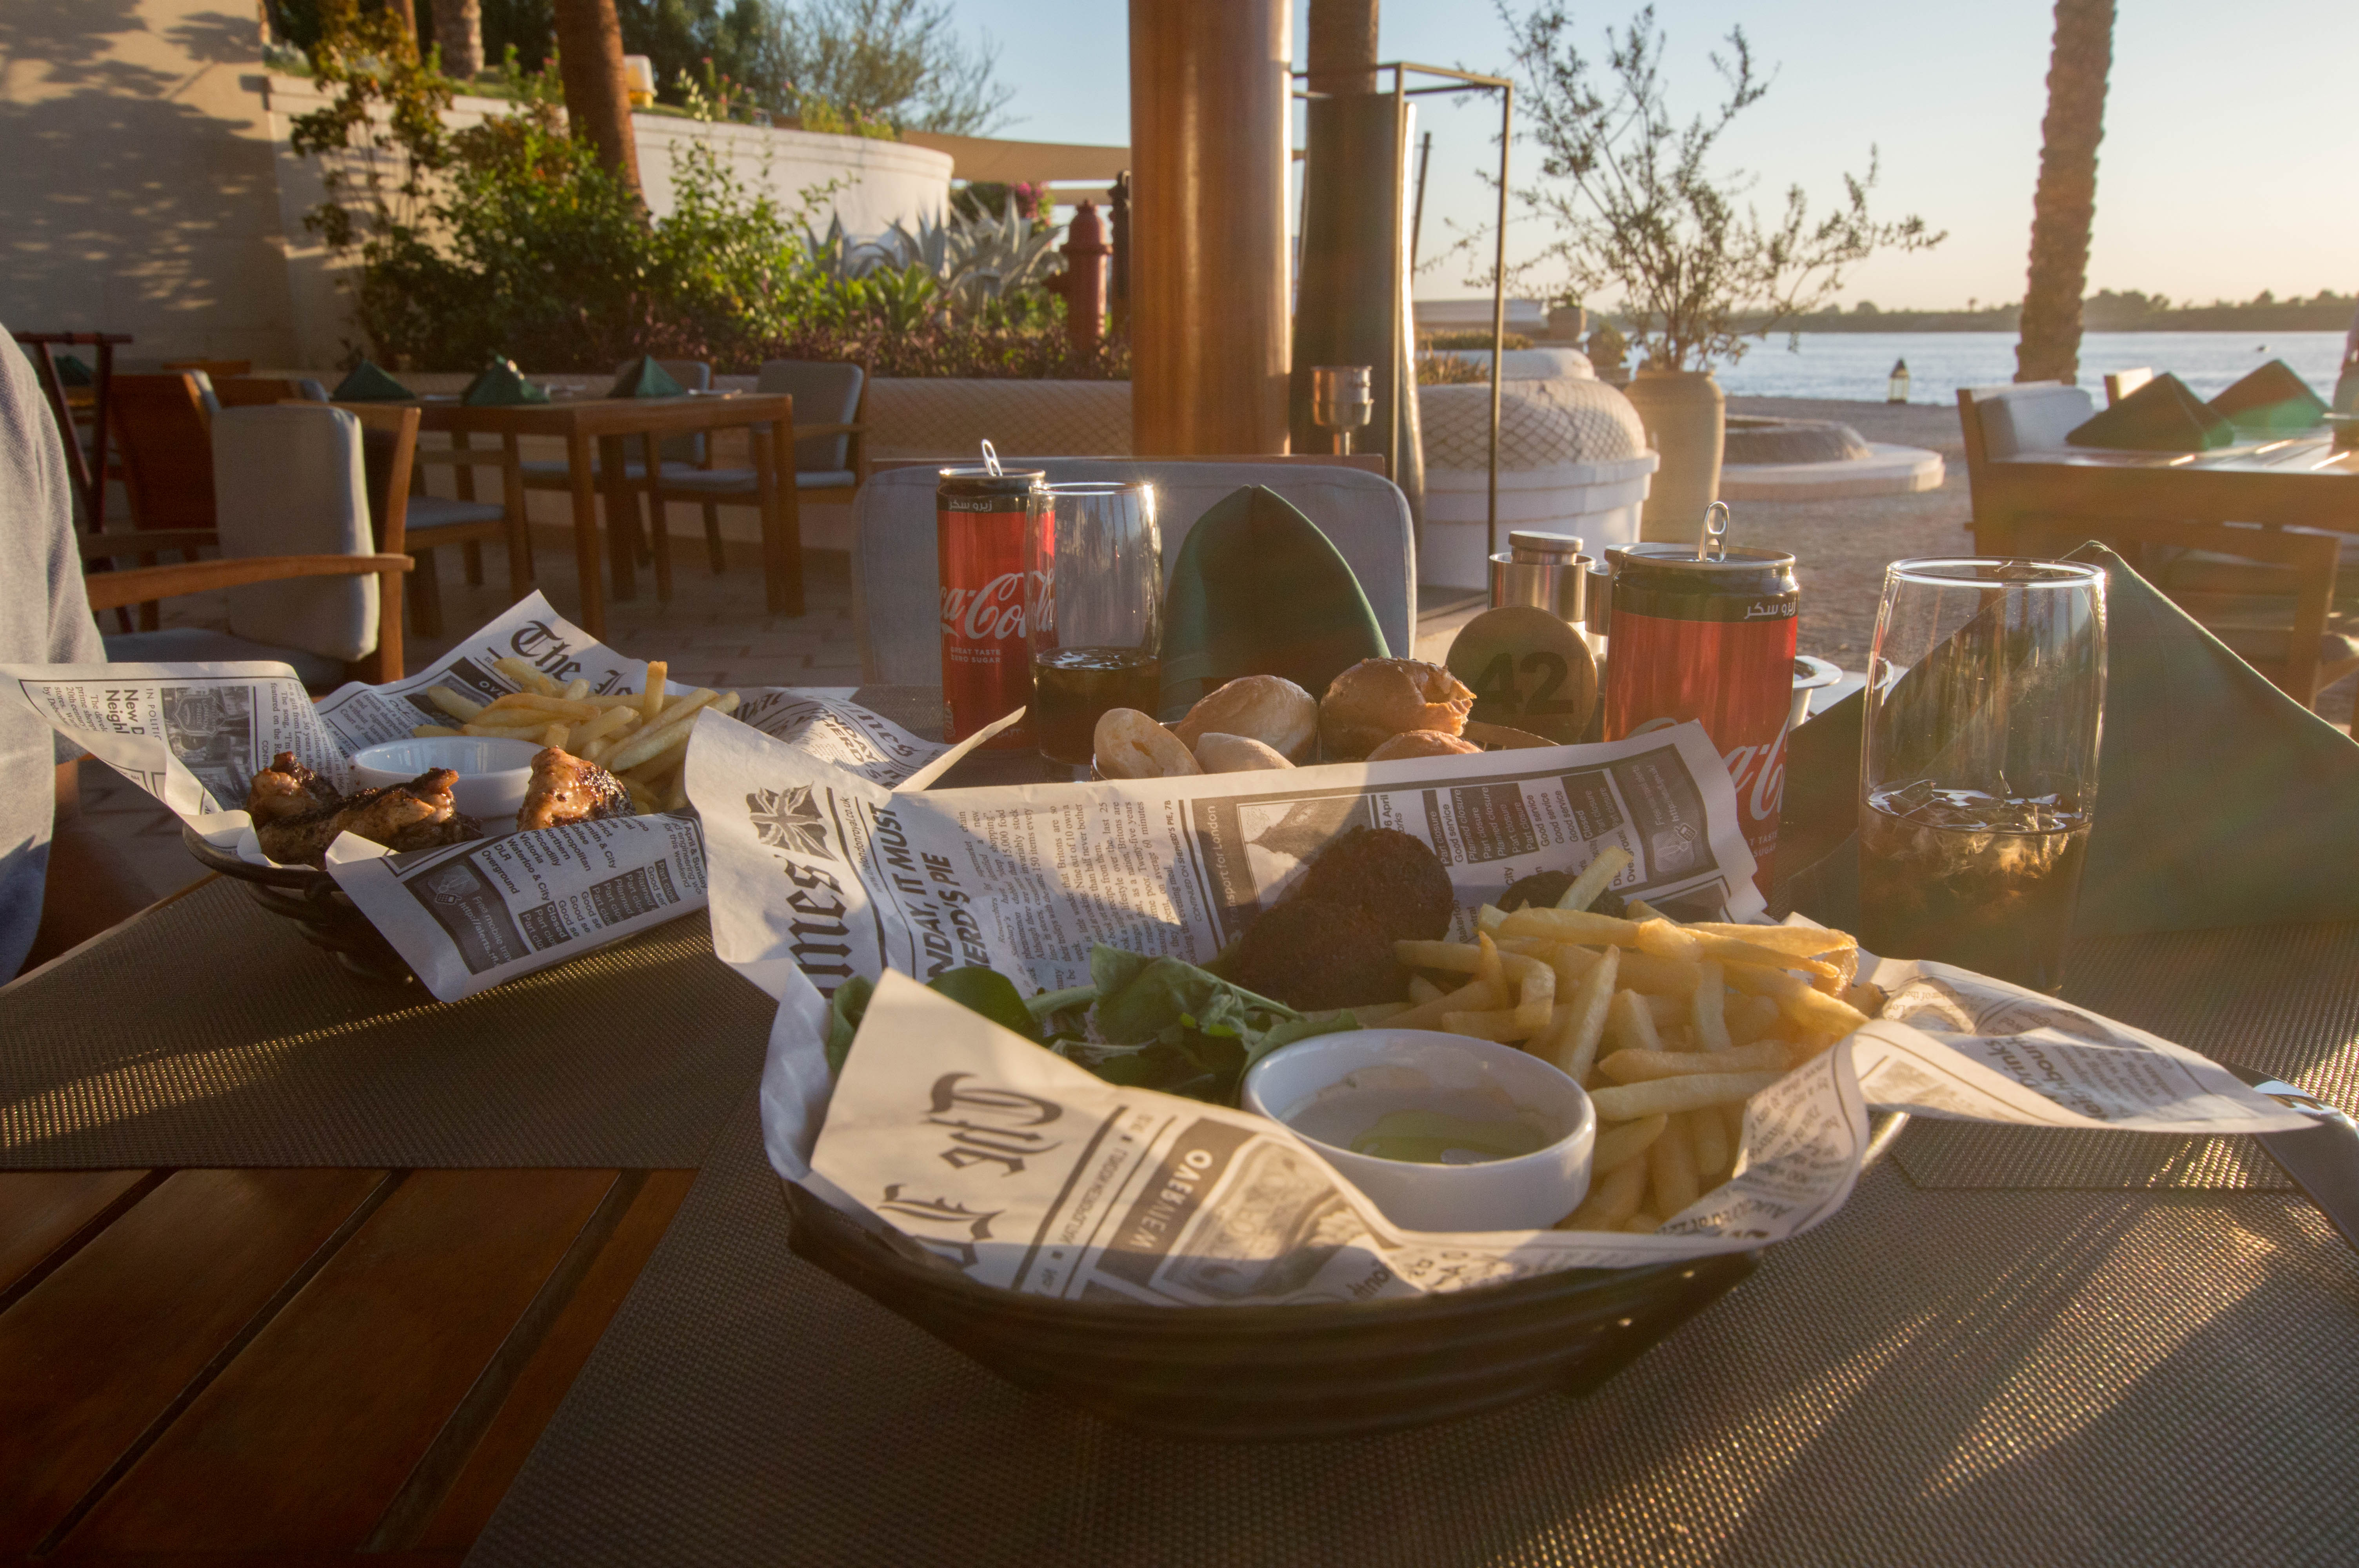 Falafel And Wings, Hilton Hotel, Luxor, Egypt